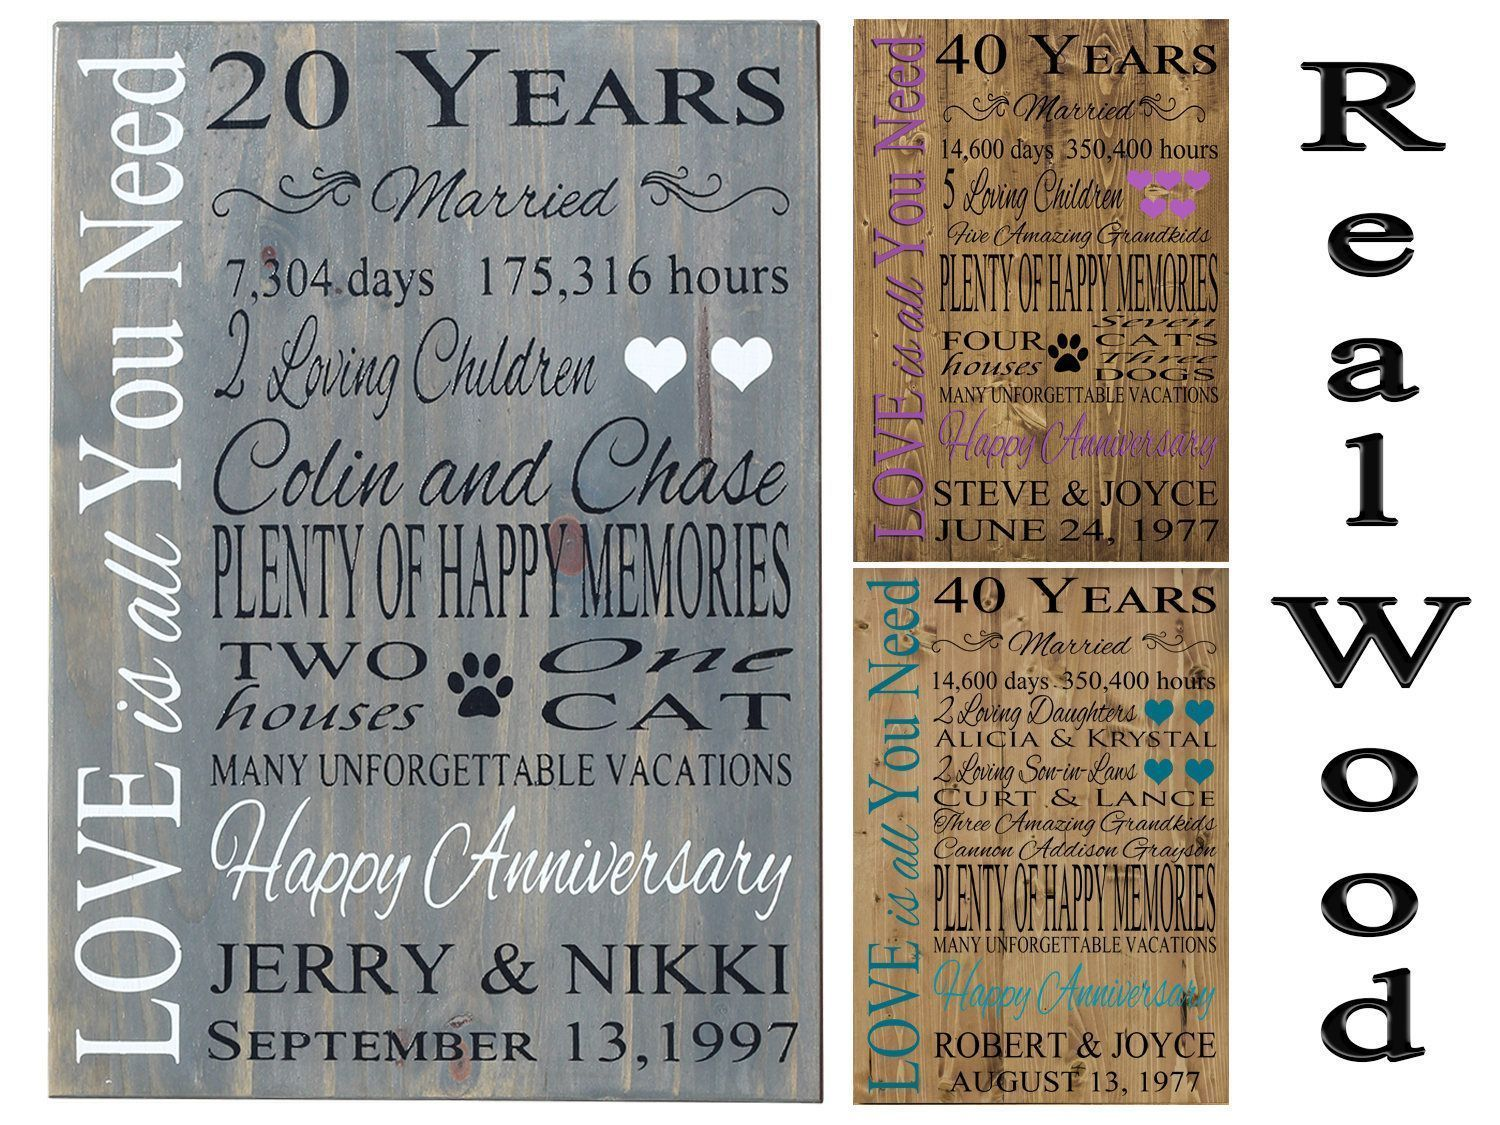 Swanky Parents 40th Anniversary Gifts Parents Ideas Ruby Wedding Anniversary Ruby Wedding Anniversary Anniversary Gifts gifts Anniversary Gifts For Parents